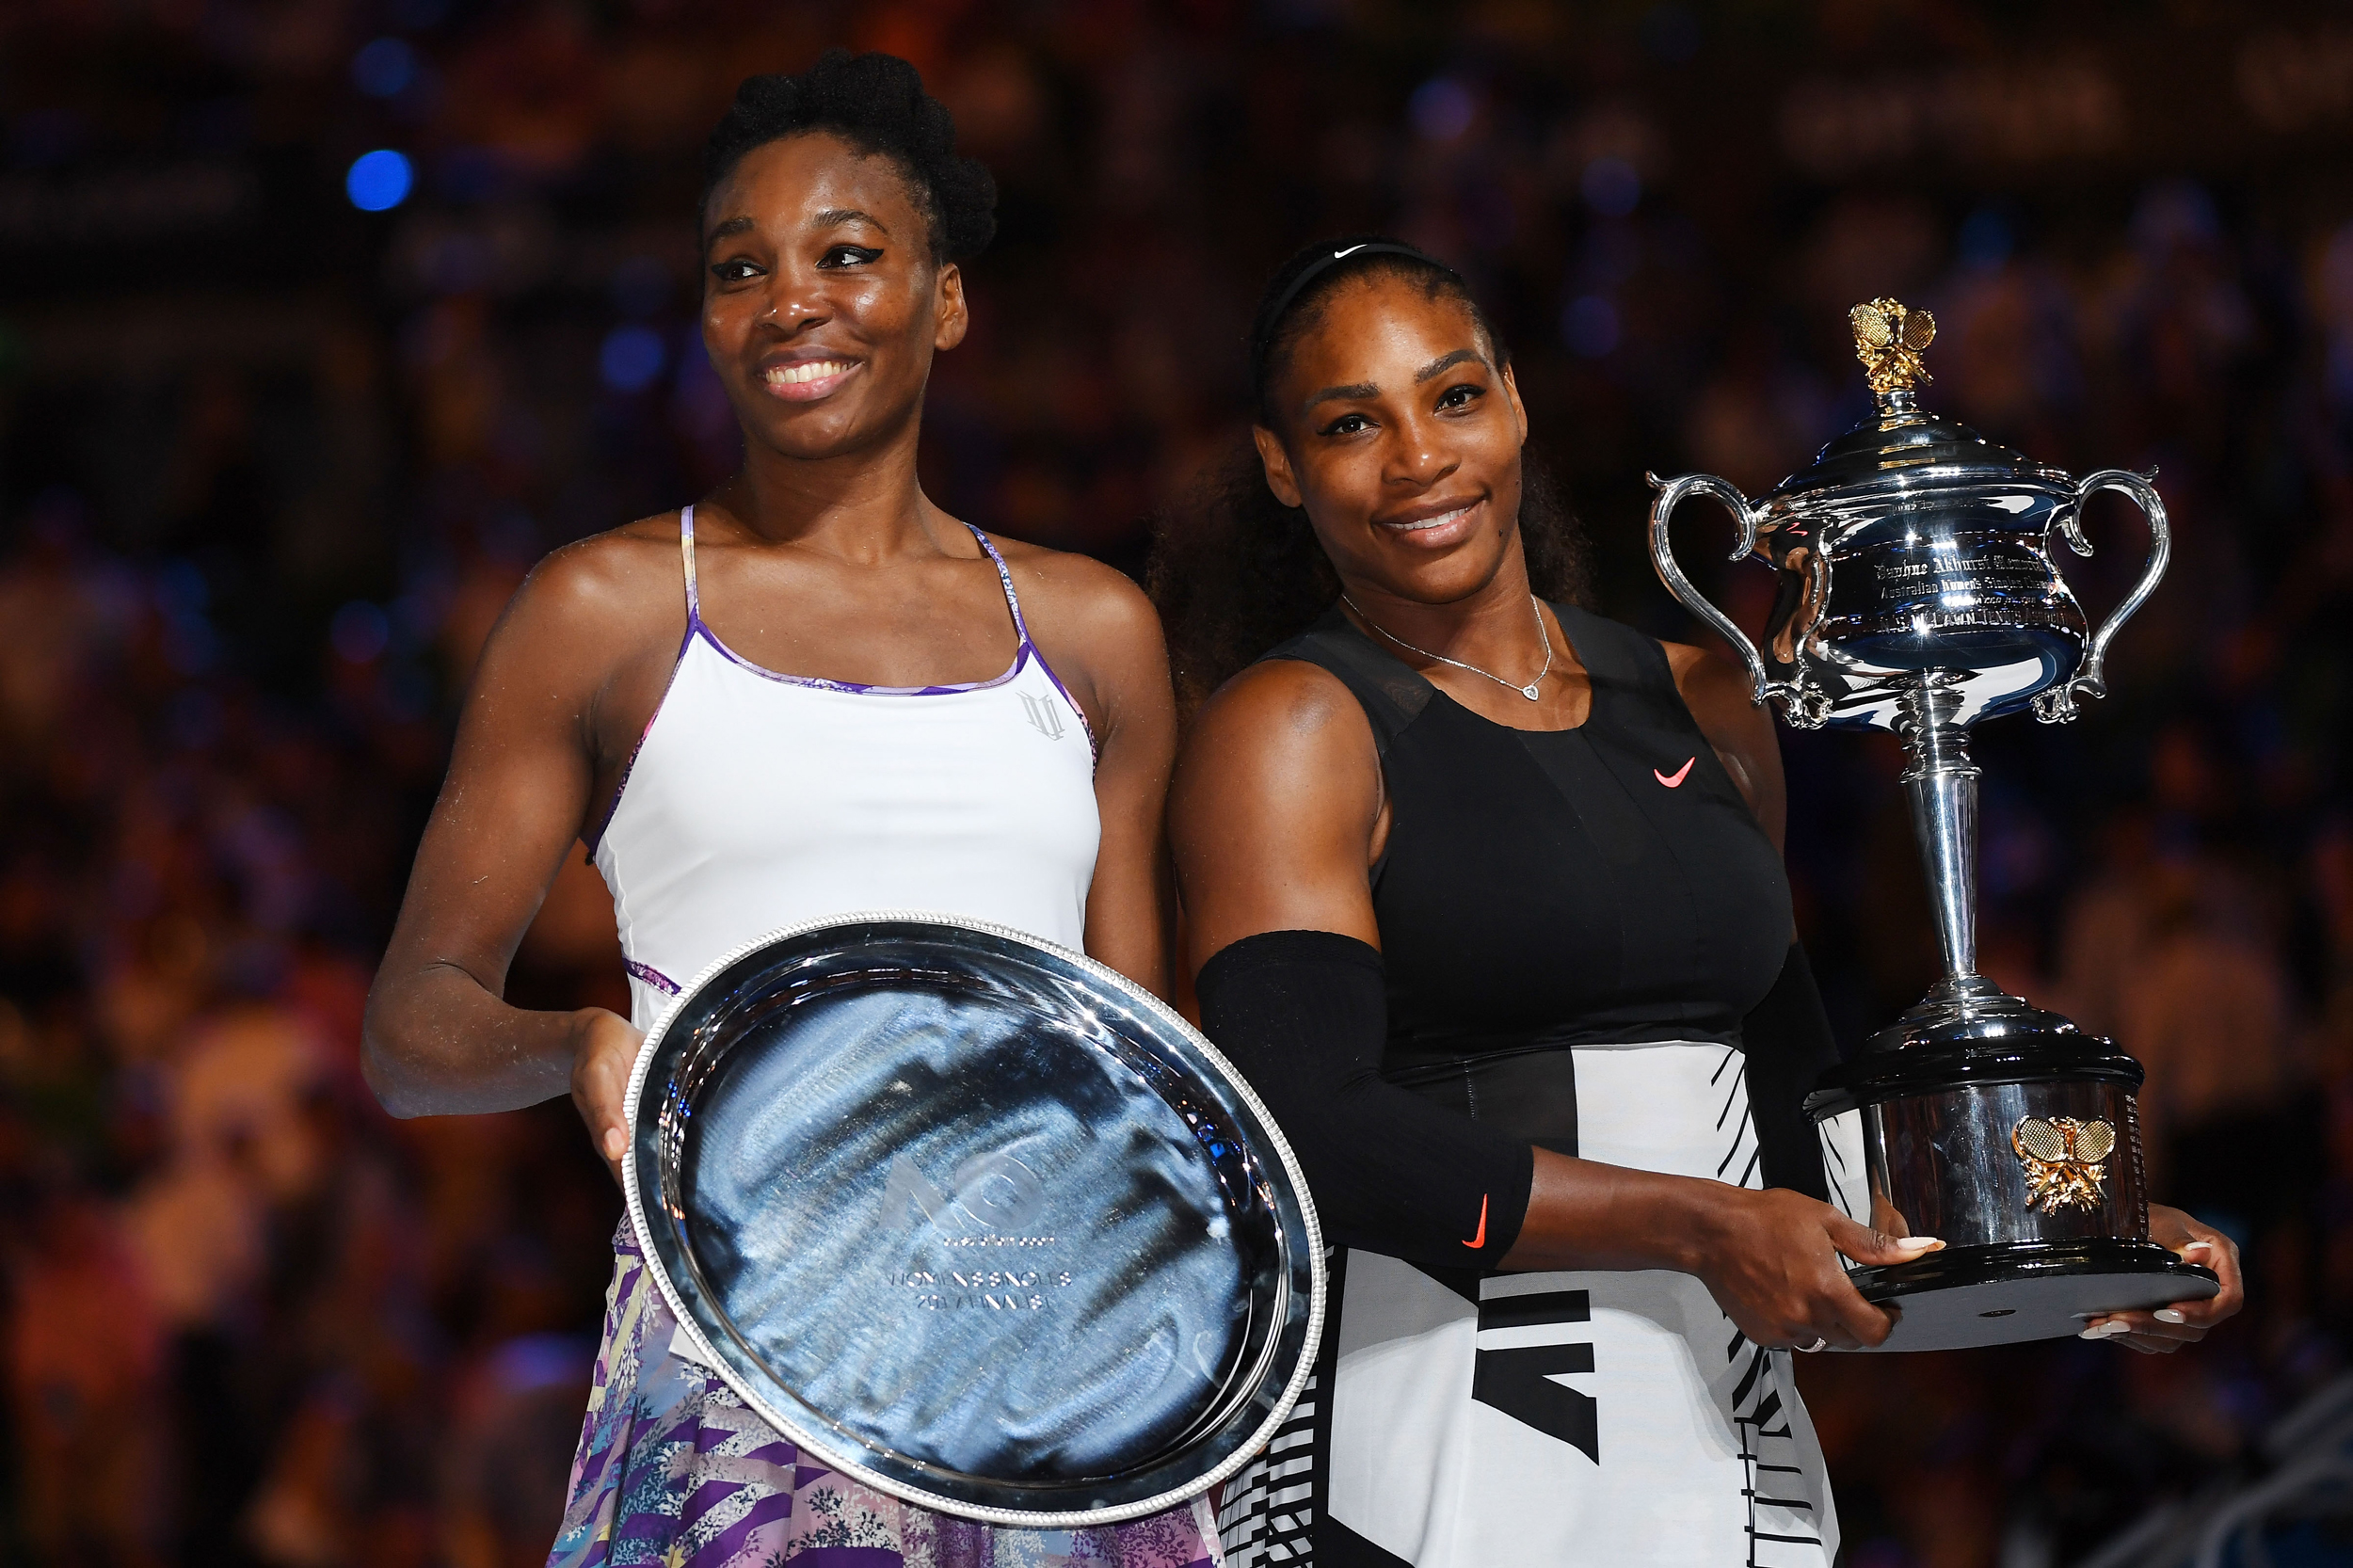 Serena Williams of the United States poses with the Daphne Akhurst Trophy alongside Venus Williams of the United States after the Women's Singles Final on day 13 of the 2017 Australian Open at Melbourne Park on January 28, 2017 in Melbourne, Australia.